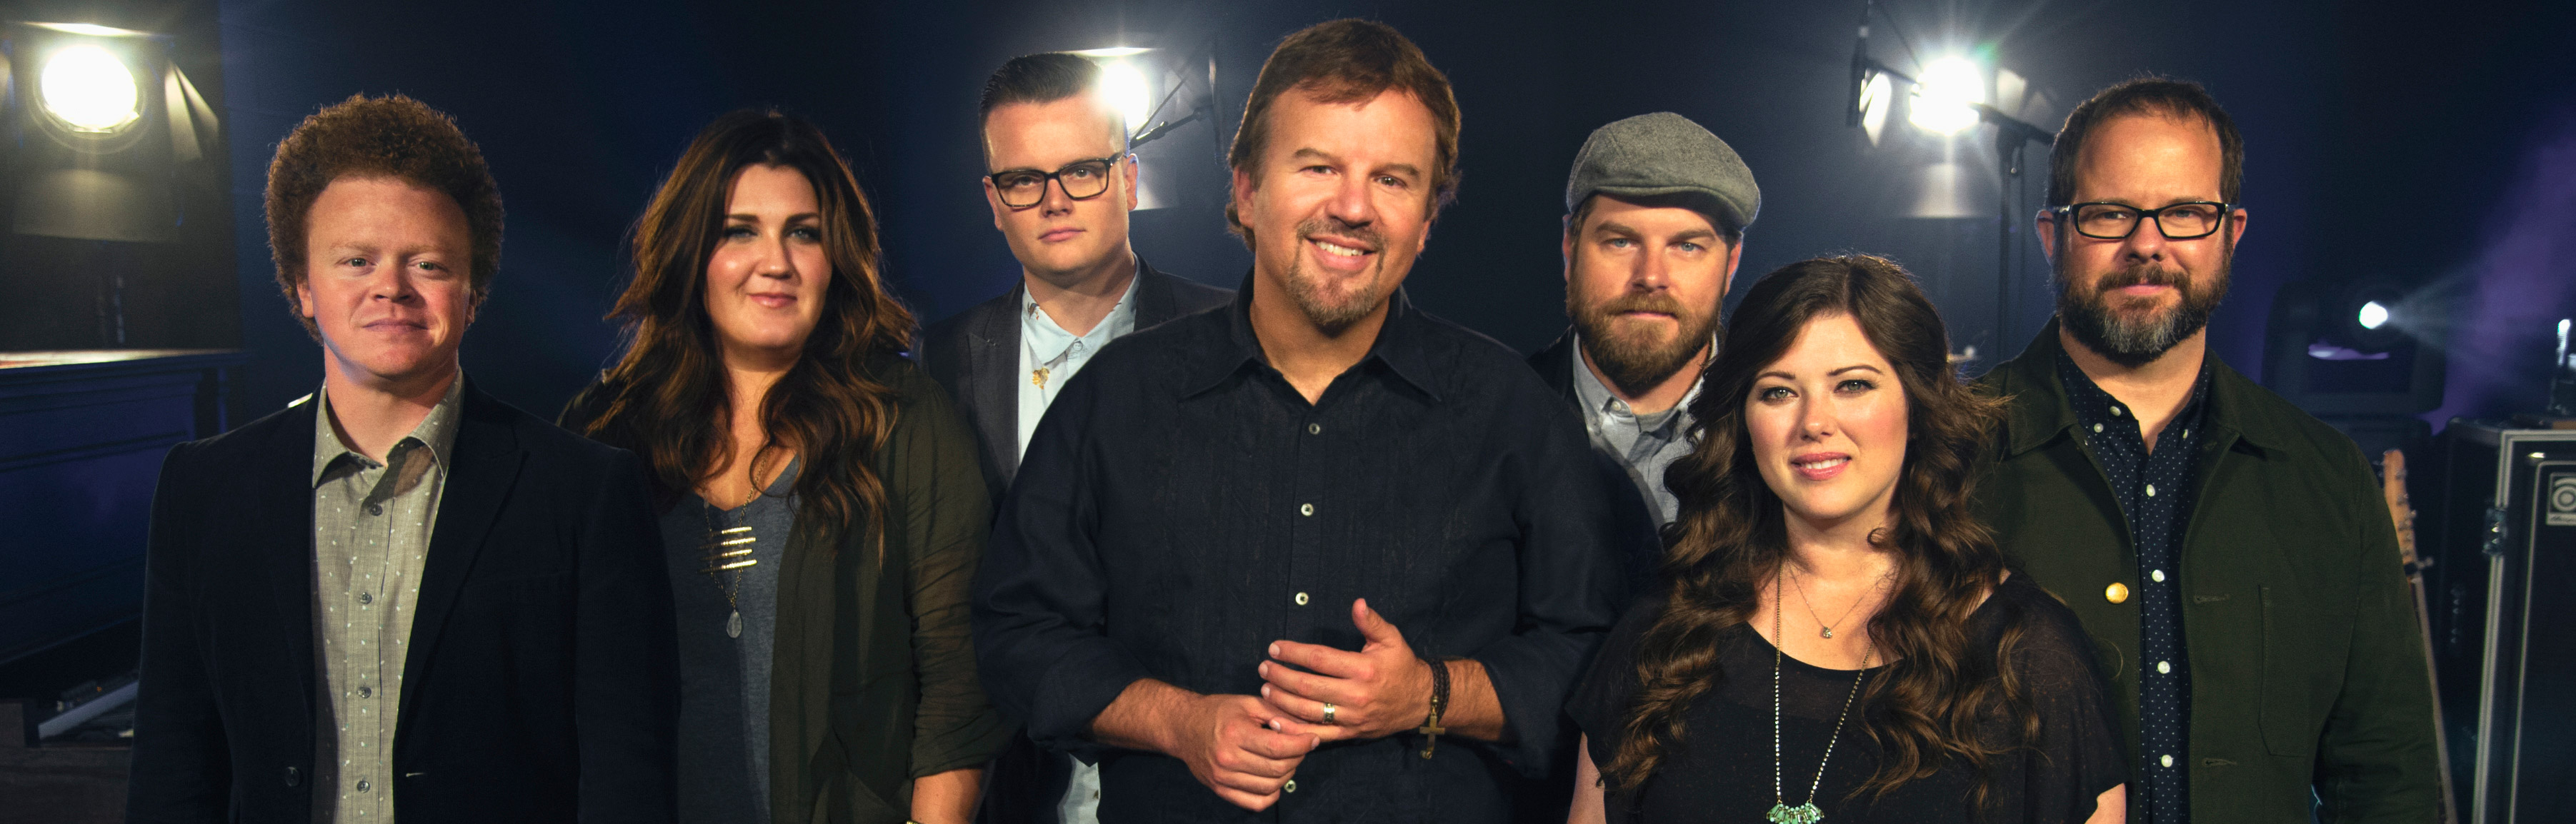 Casting Crowns Video Car Crash Girl Drunk Driving Song